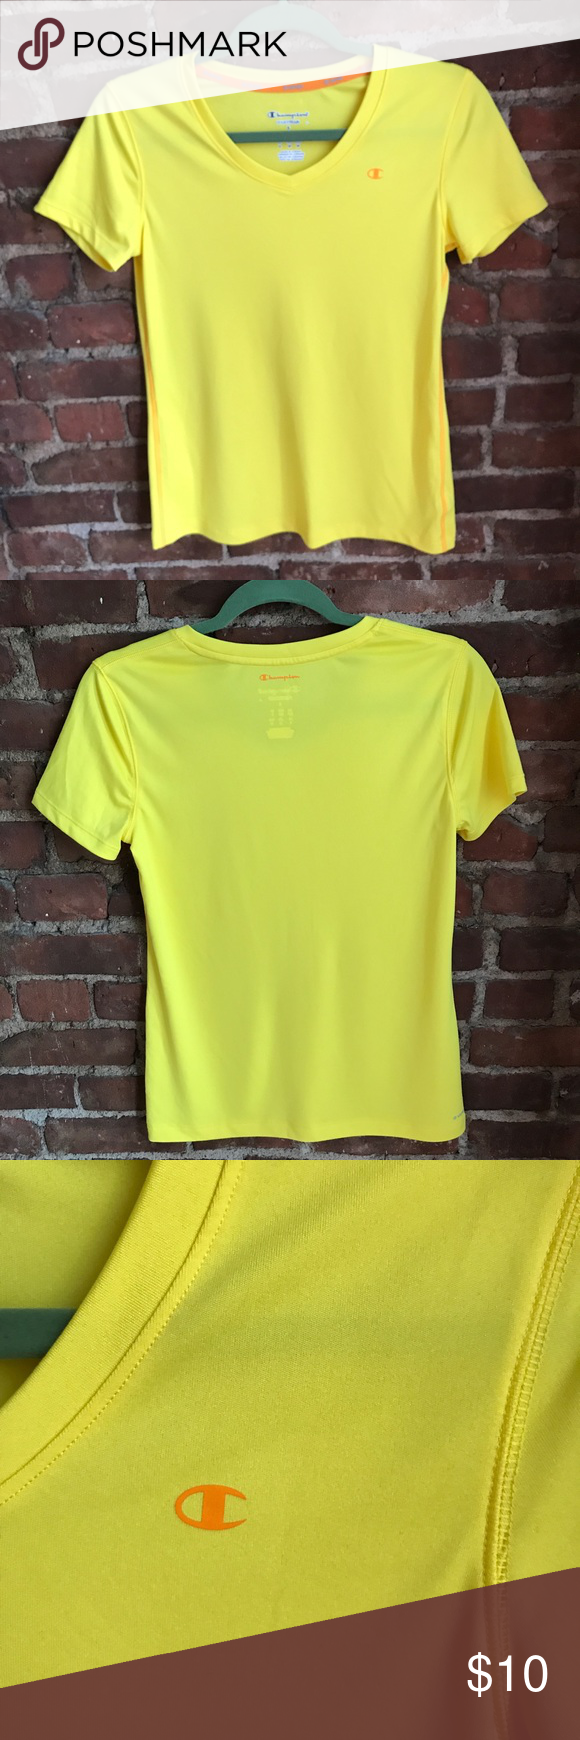 Champion Workout Tee Champion workout tee. Bright yellow! Worn a handful of times, very good condition. Champion Tops Tees - Short Sleeve